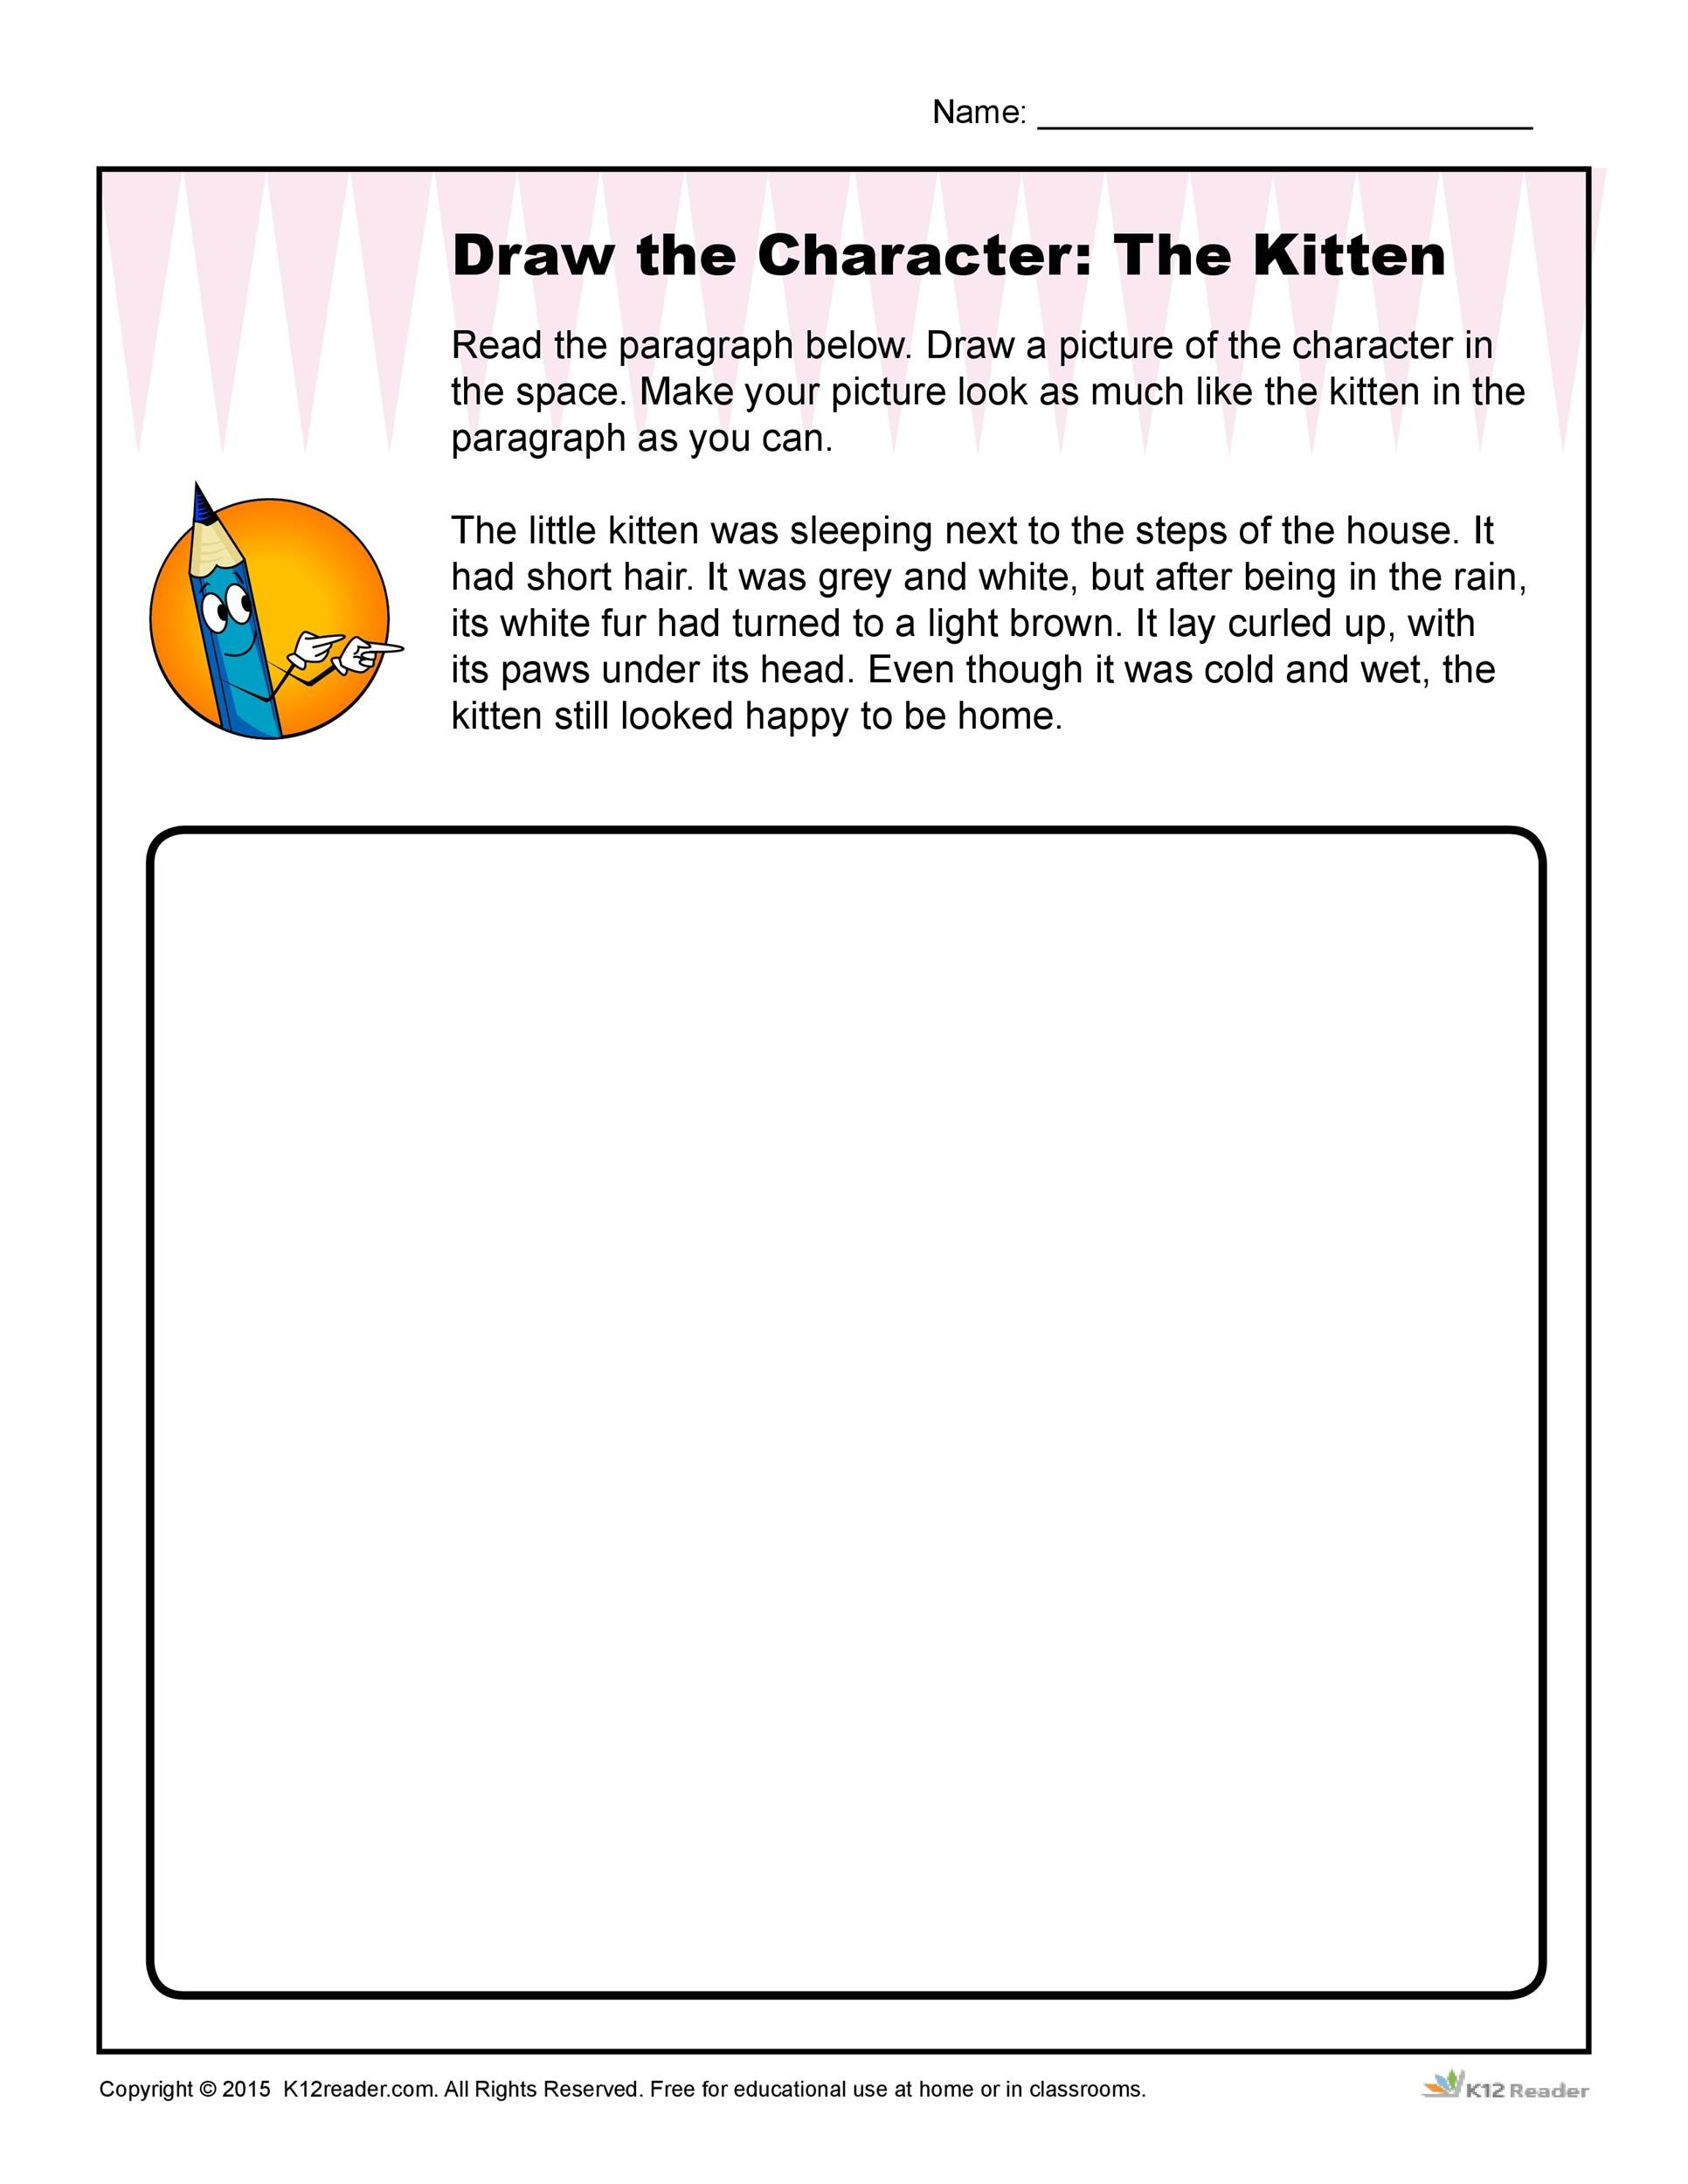 Book Summary Template. Cheeseburger Book Report Project: Templates